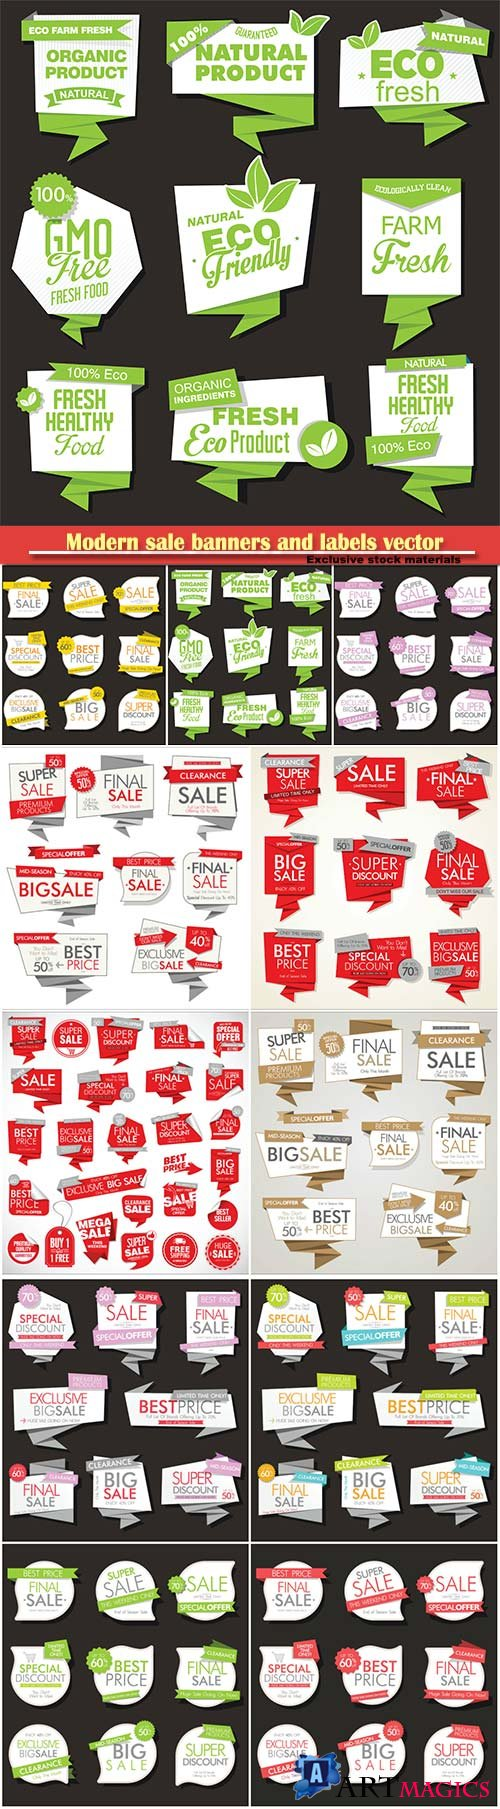 Modern sale banners and labels vector collection